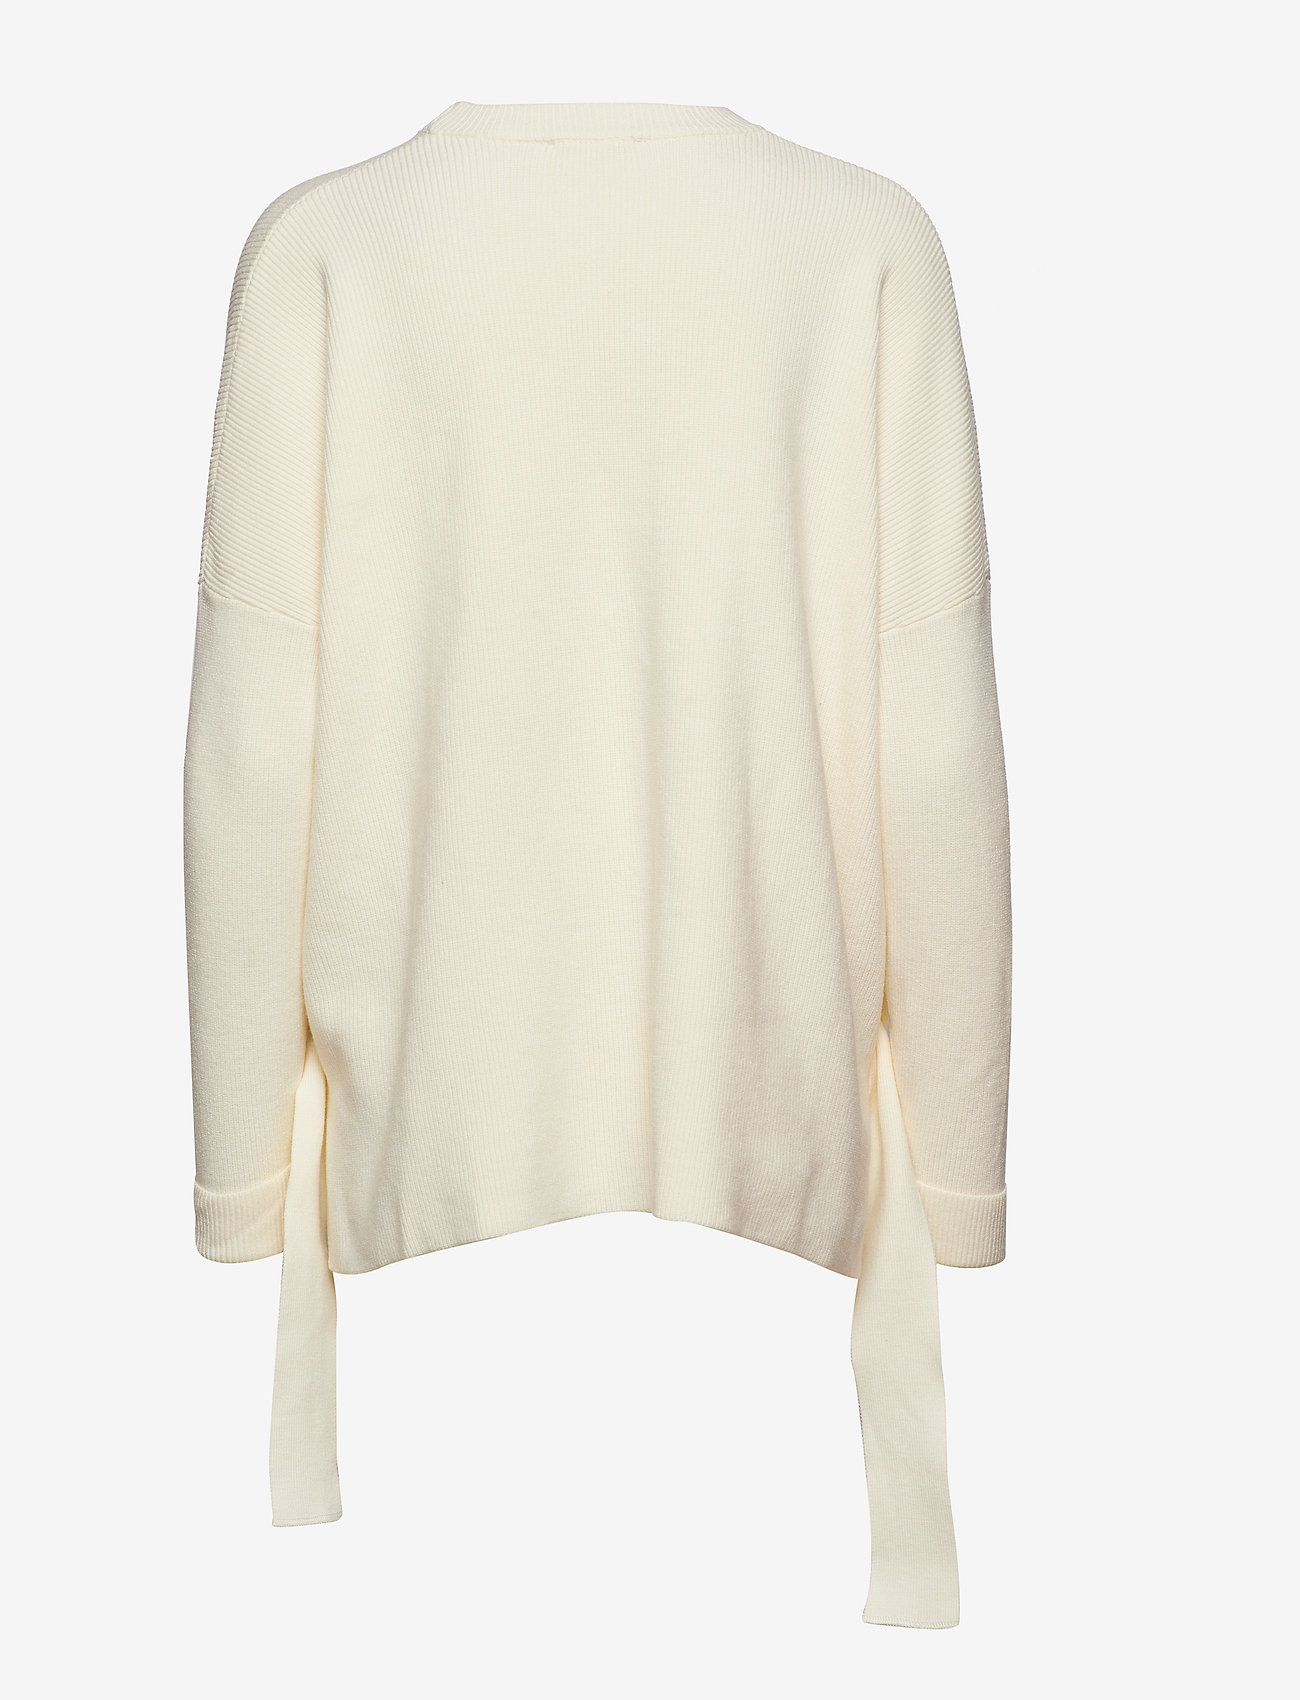 Sweater In Knit W. Tie band Detail (Creme) (59.60